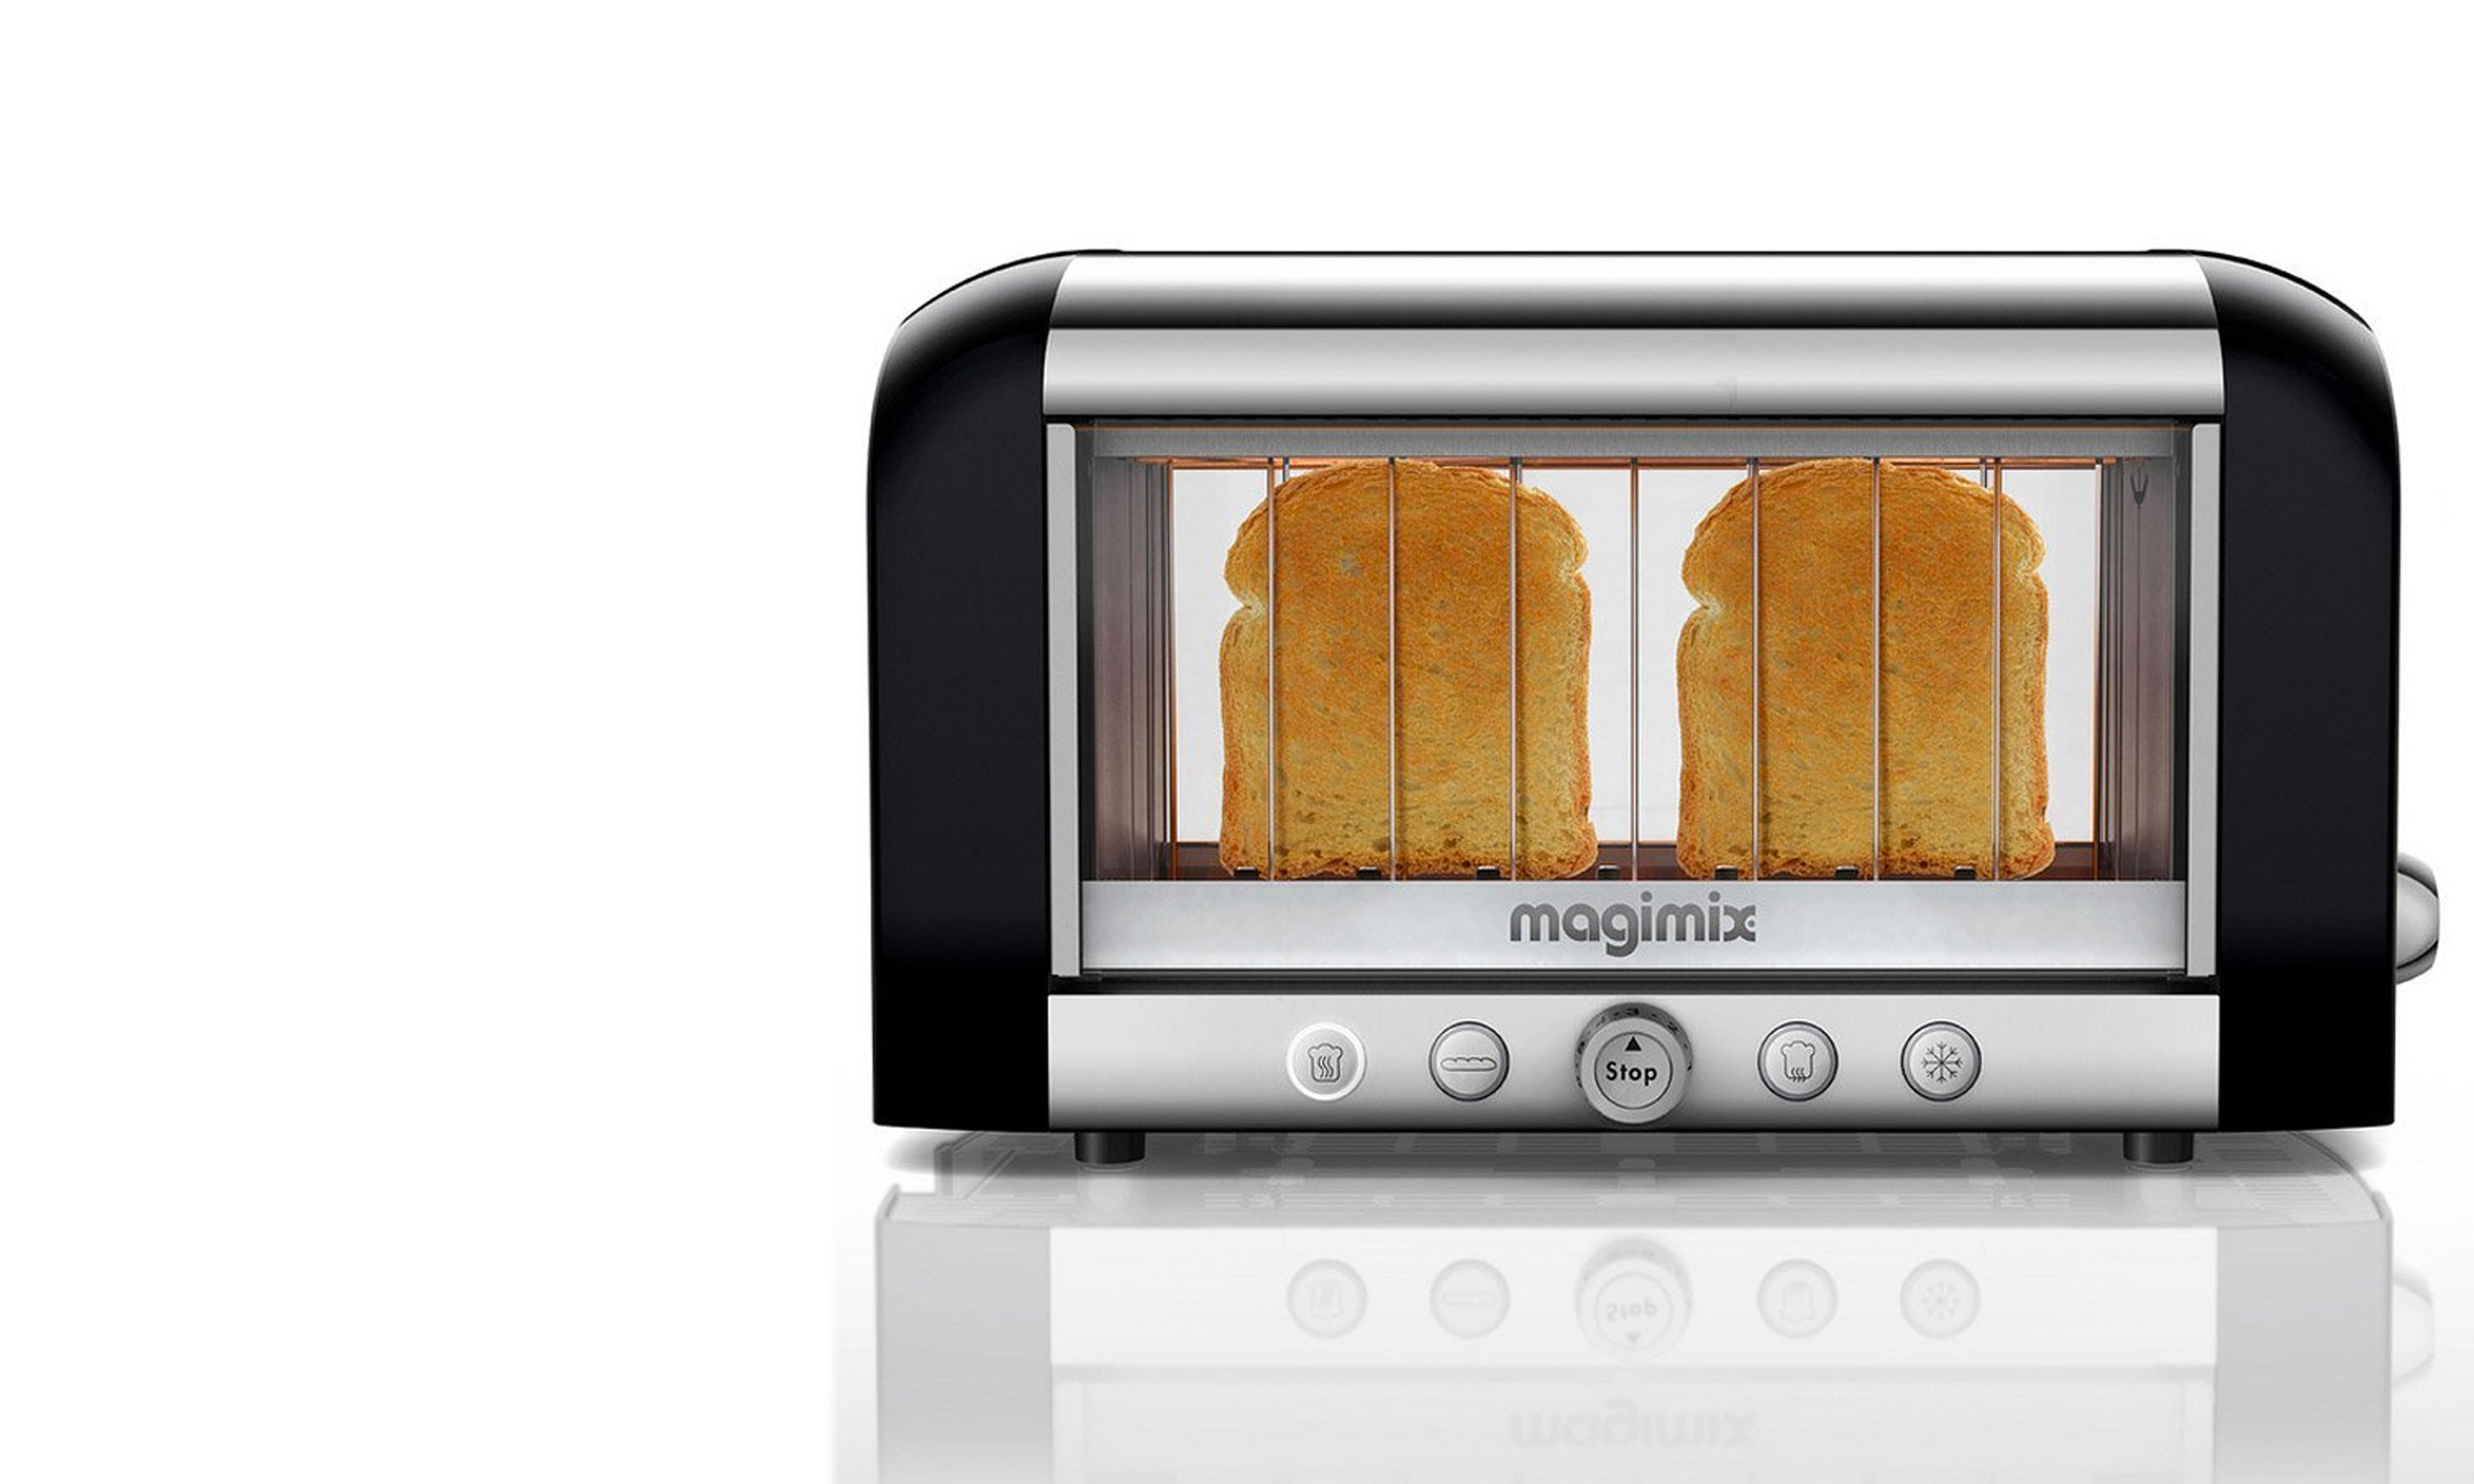 This Glass Toaster Lets You Make Perfect Toast Every Time